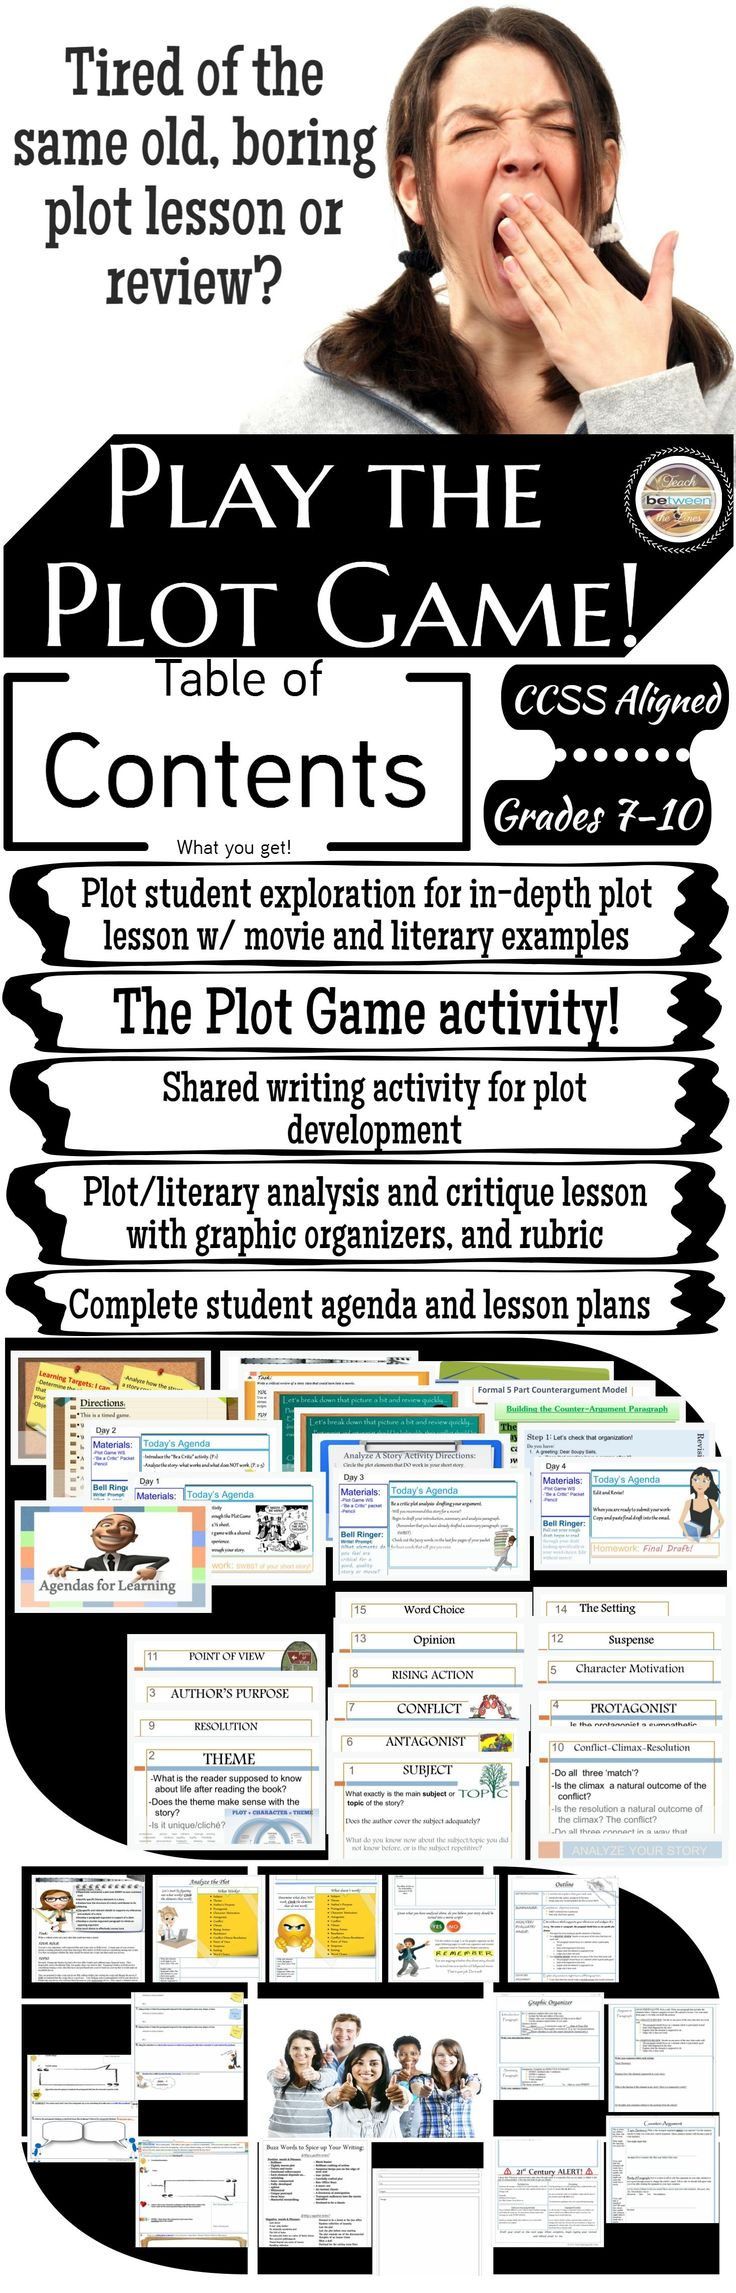 The plot/literary elements game activity fosters a shared writing experience for students in the creation of a fun, creative, and often hilarious story.   Students then analyze this story for its flawed plot elements based on their understanding of literary elements.